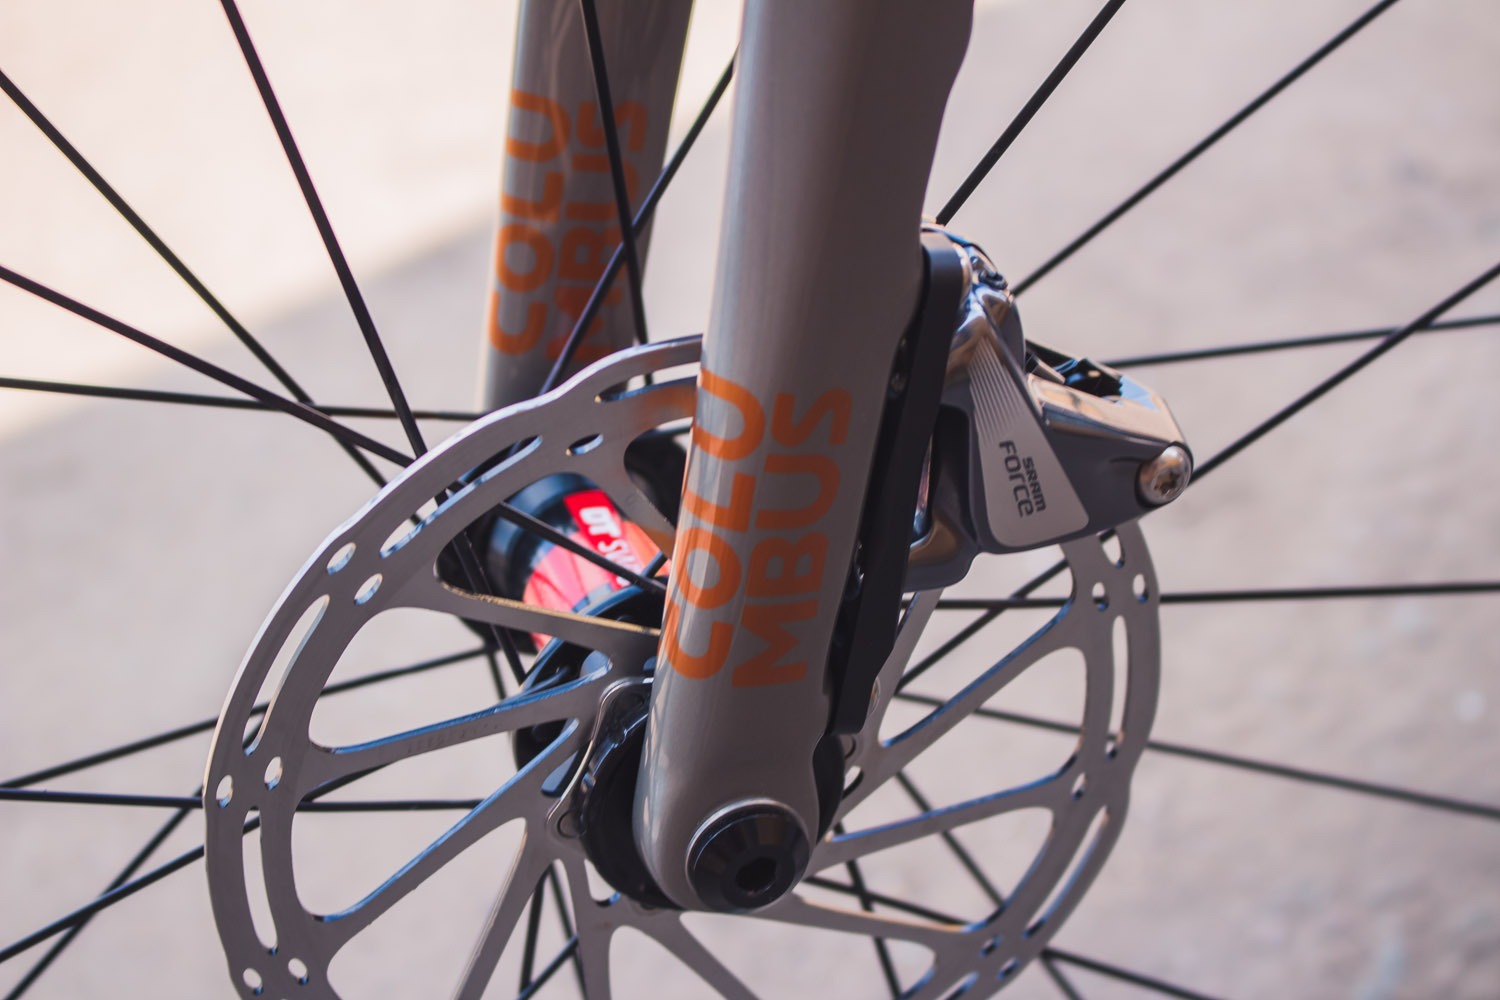 quirk_cycles_rich_mallet_road_14.jpg